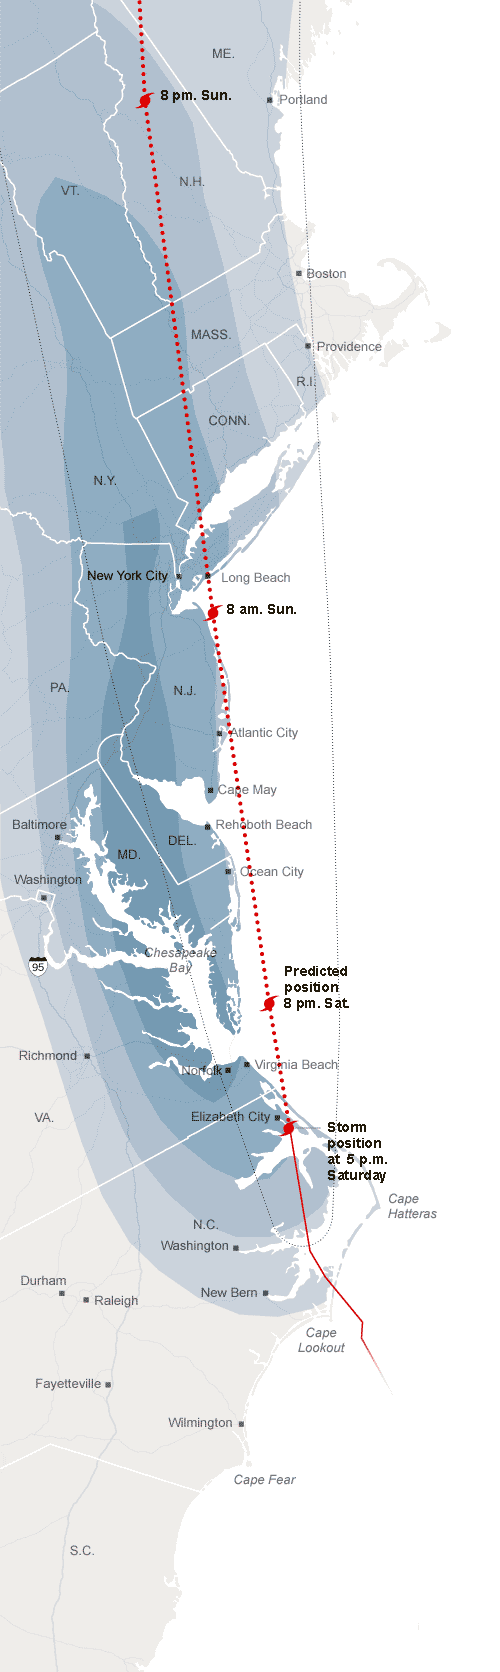 http://graphics8.nytimes.com/packages/images/newsgraphics/2011/0827-irene-damage-reports/storm-map.png